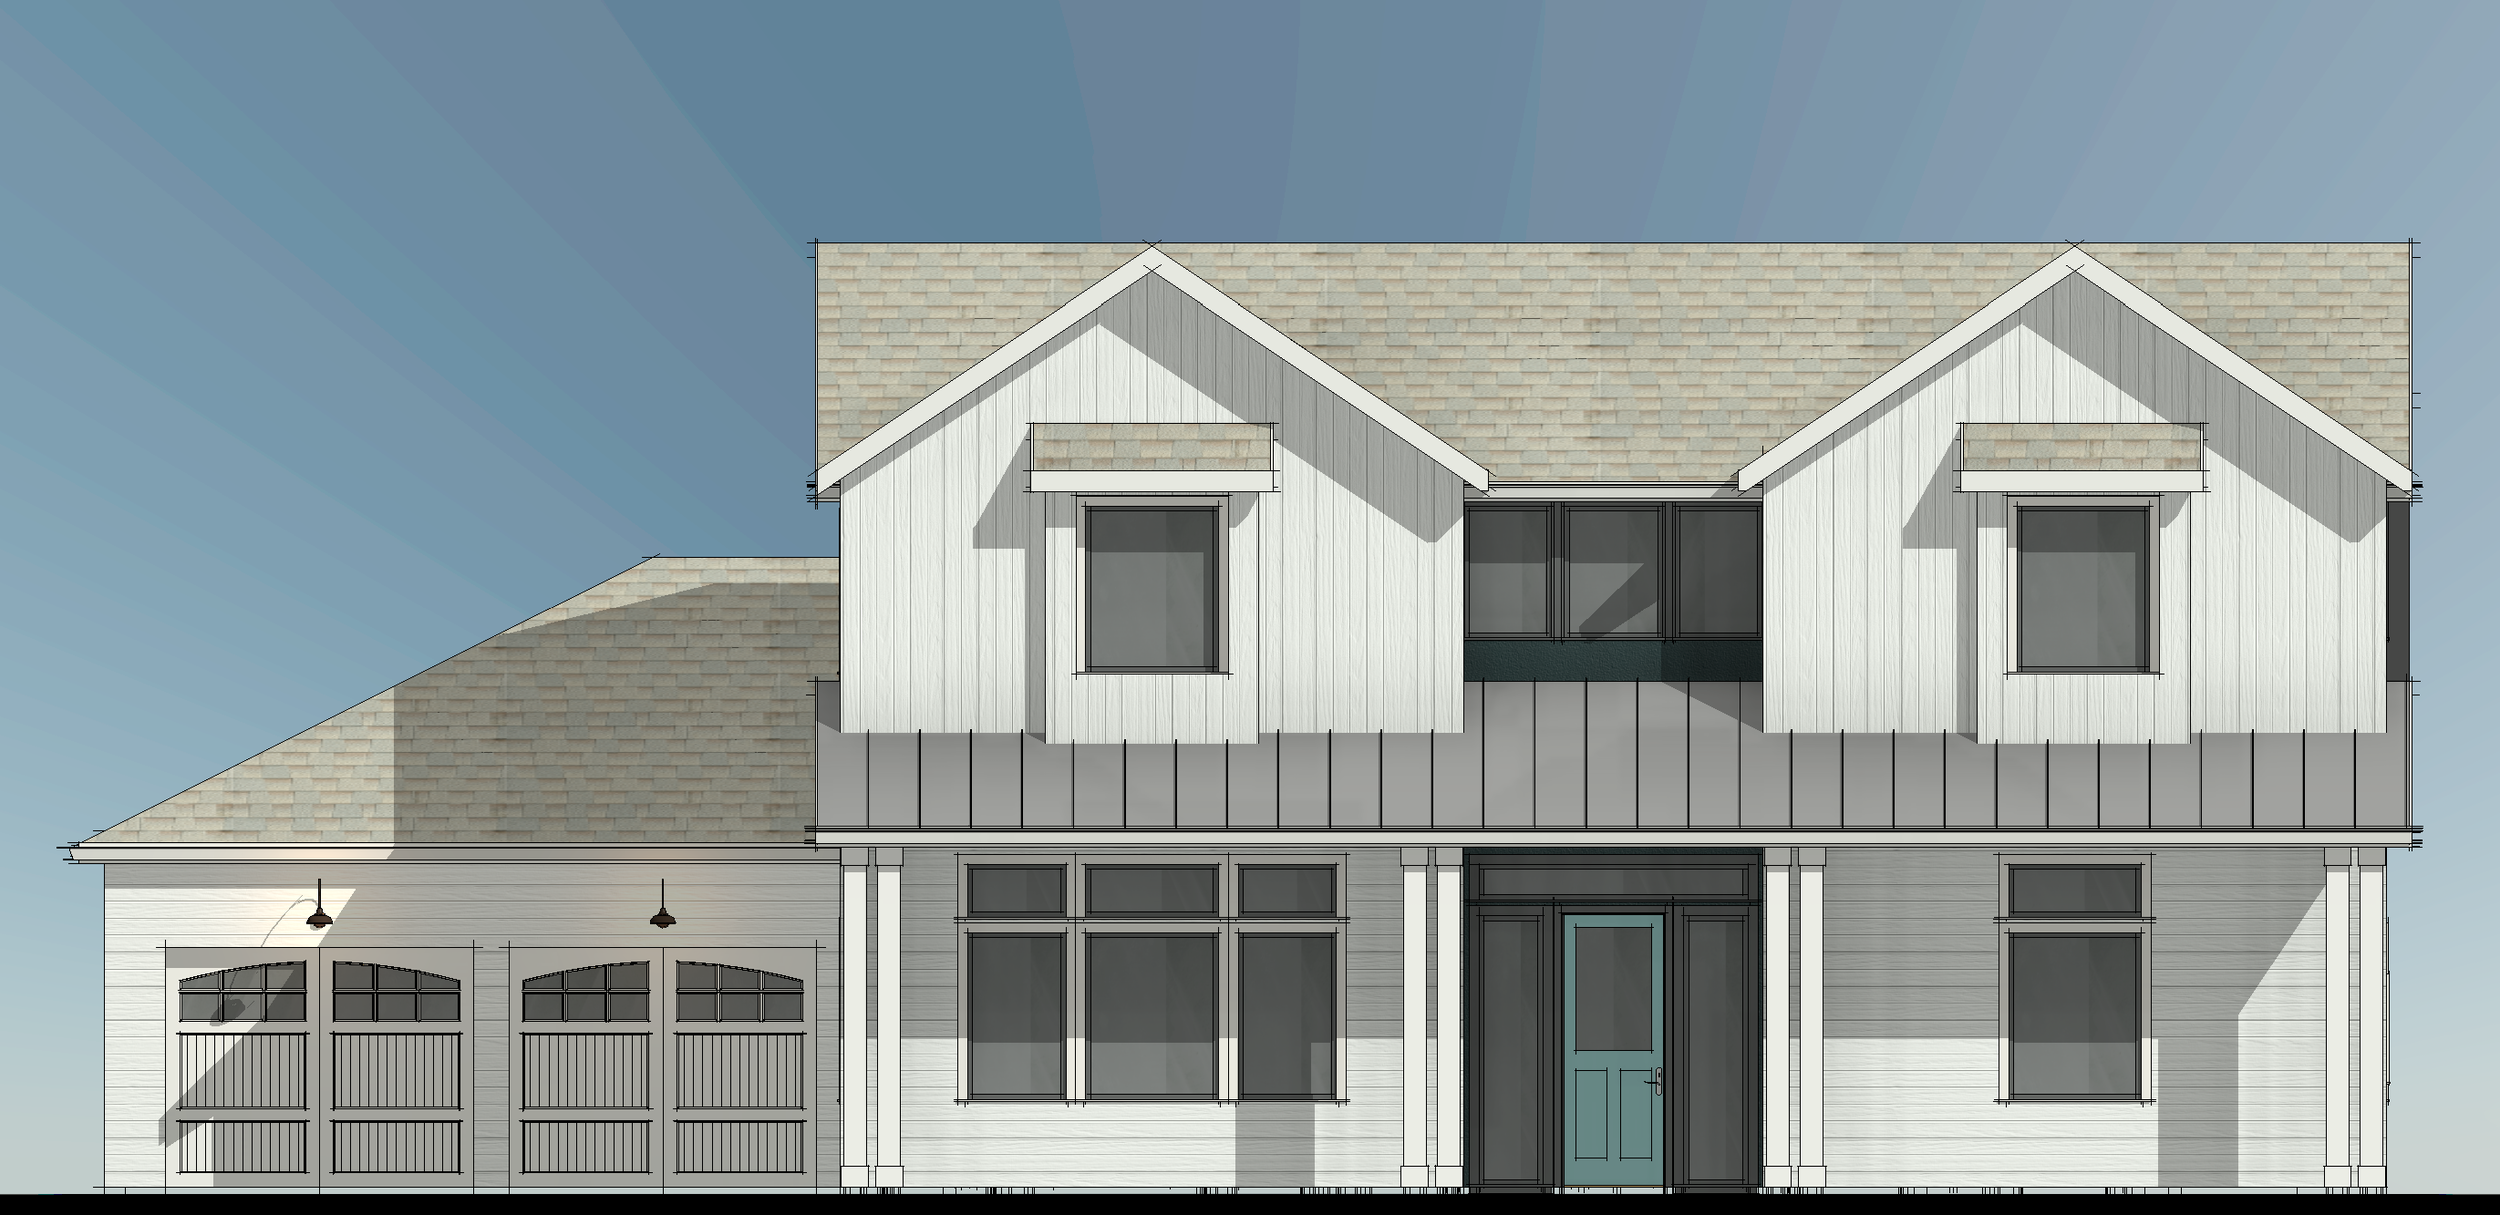 Plan 4 Concept Elevation - 3D View - Rendered Elevation.png